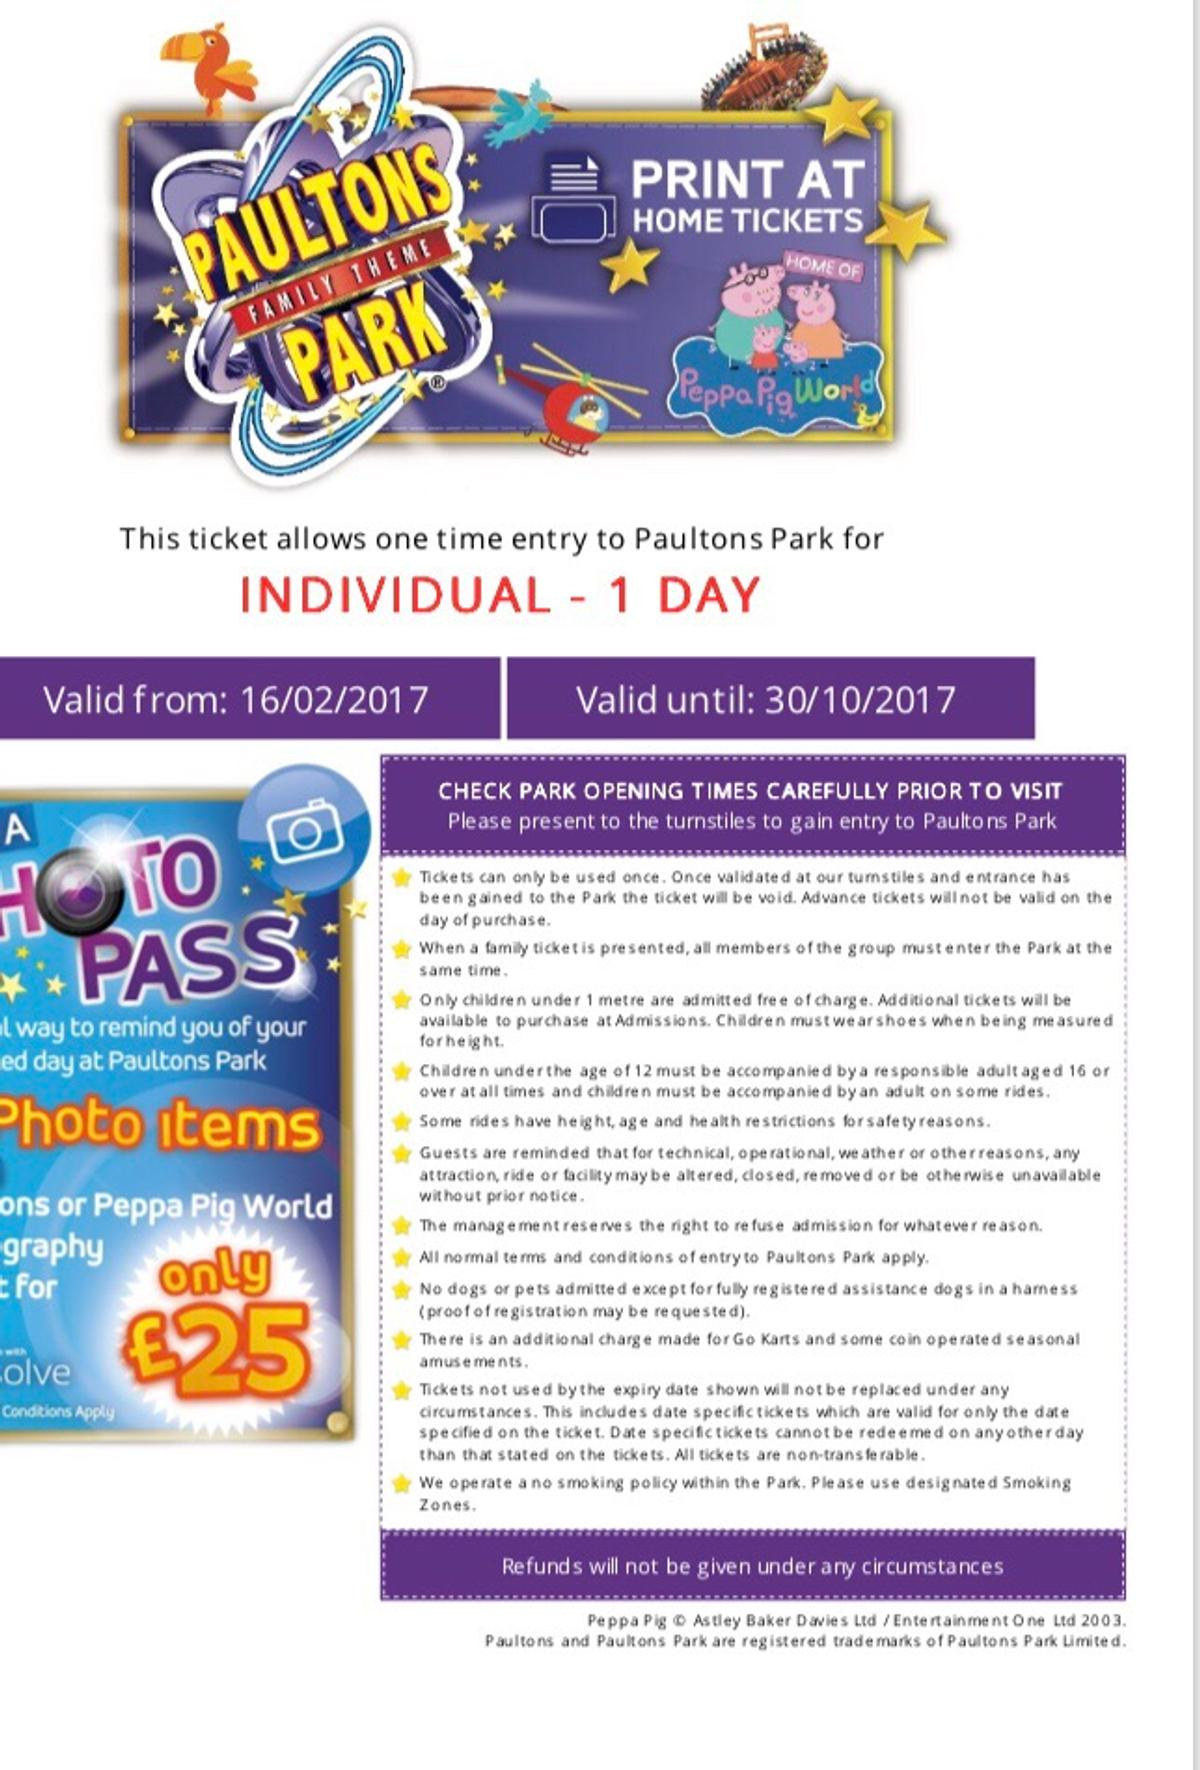 X2 Peppa Pig World Tickets At Paultons Park